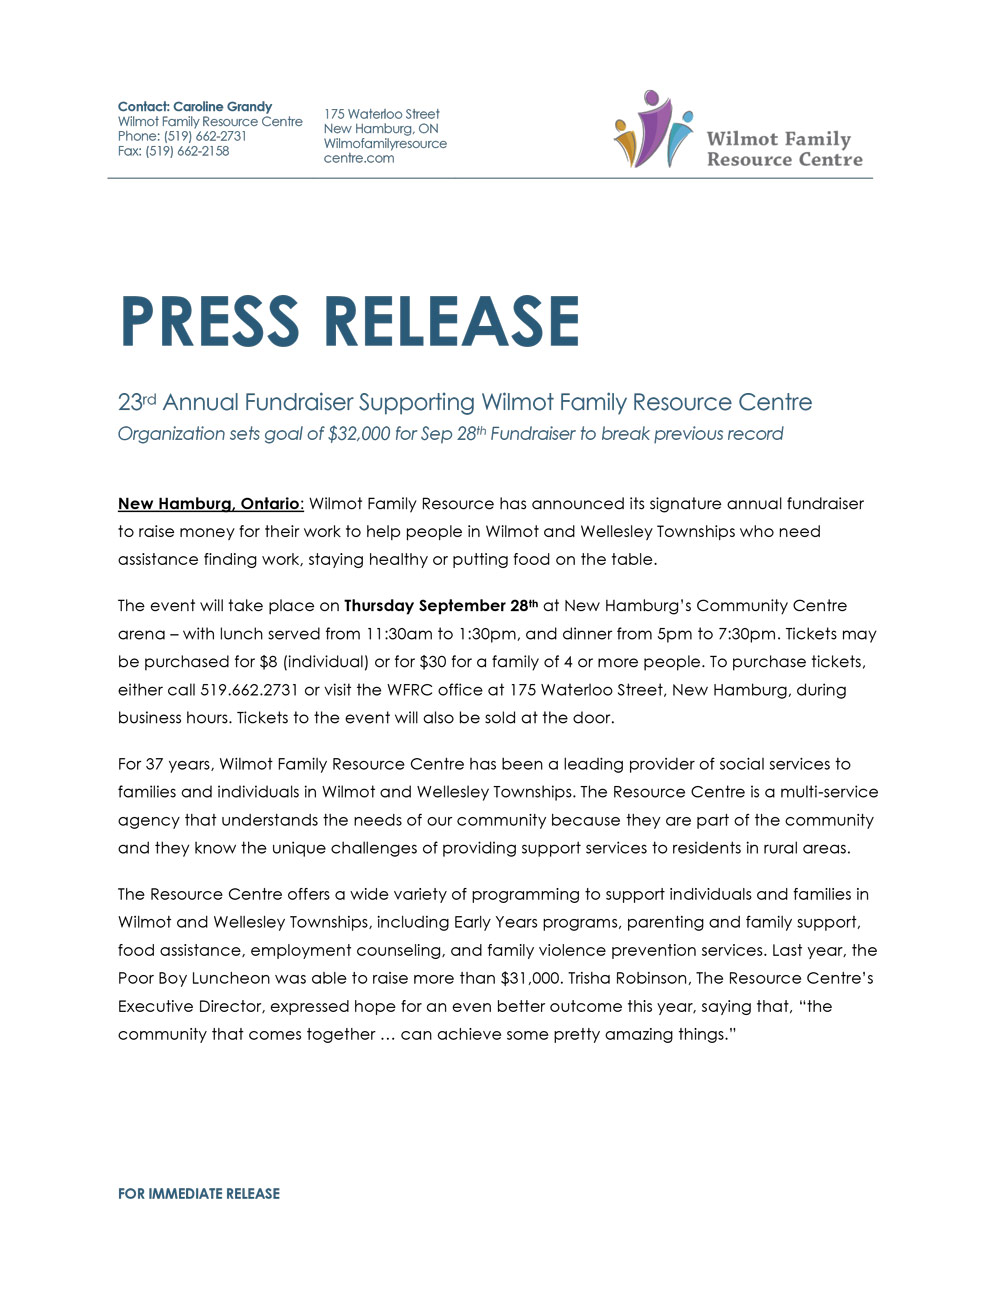 WFRC Fundraiser Press Release